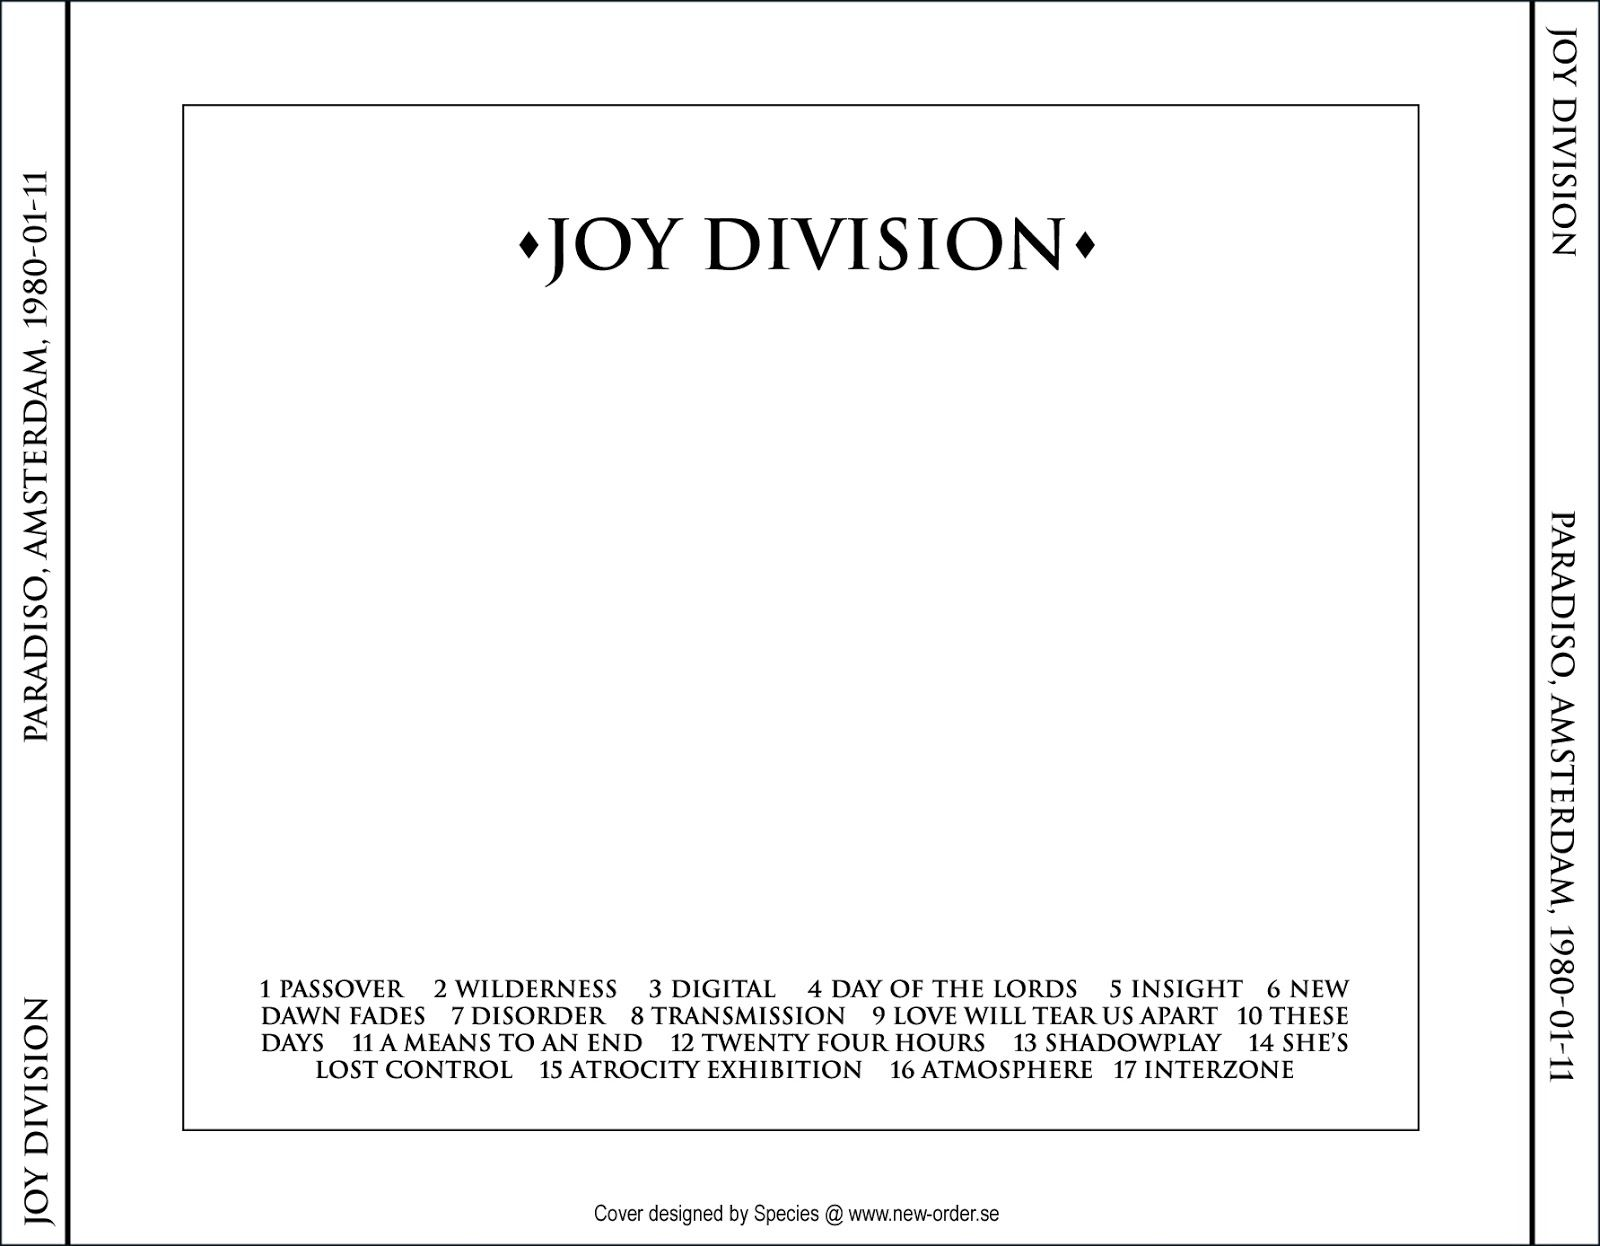 Pin By Nicole On Ian Joy Division Joy Division My Favorite